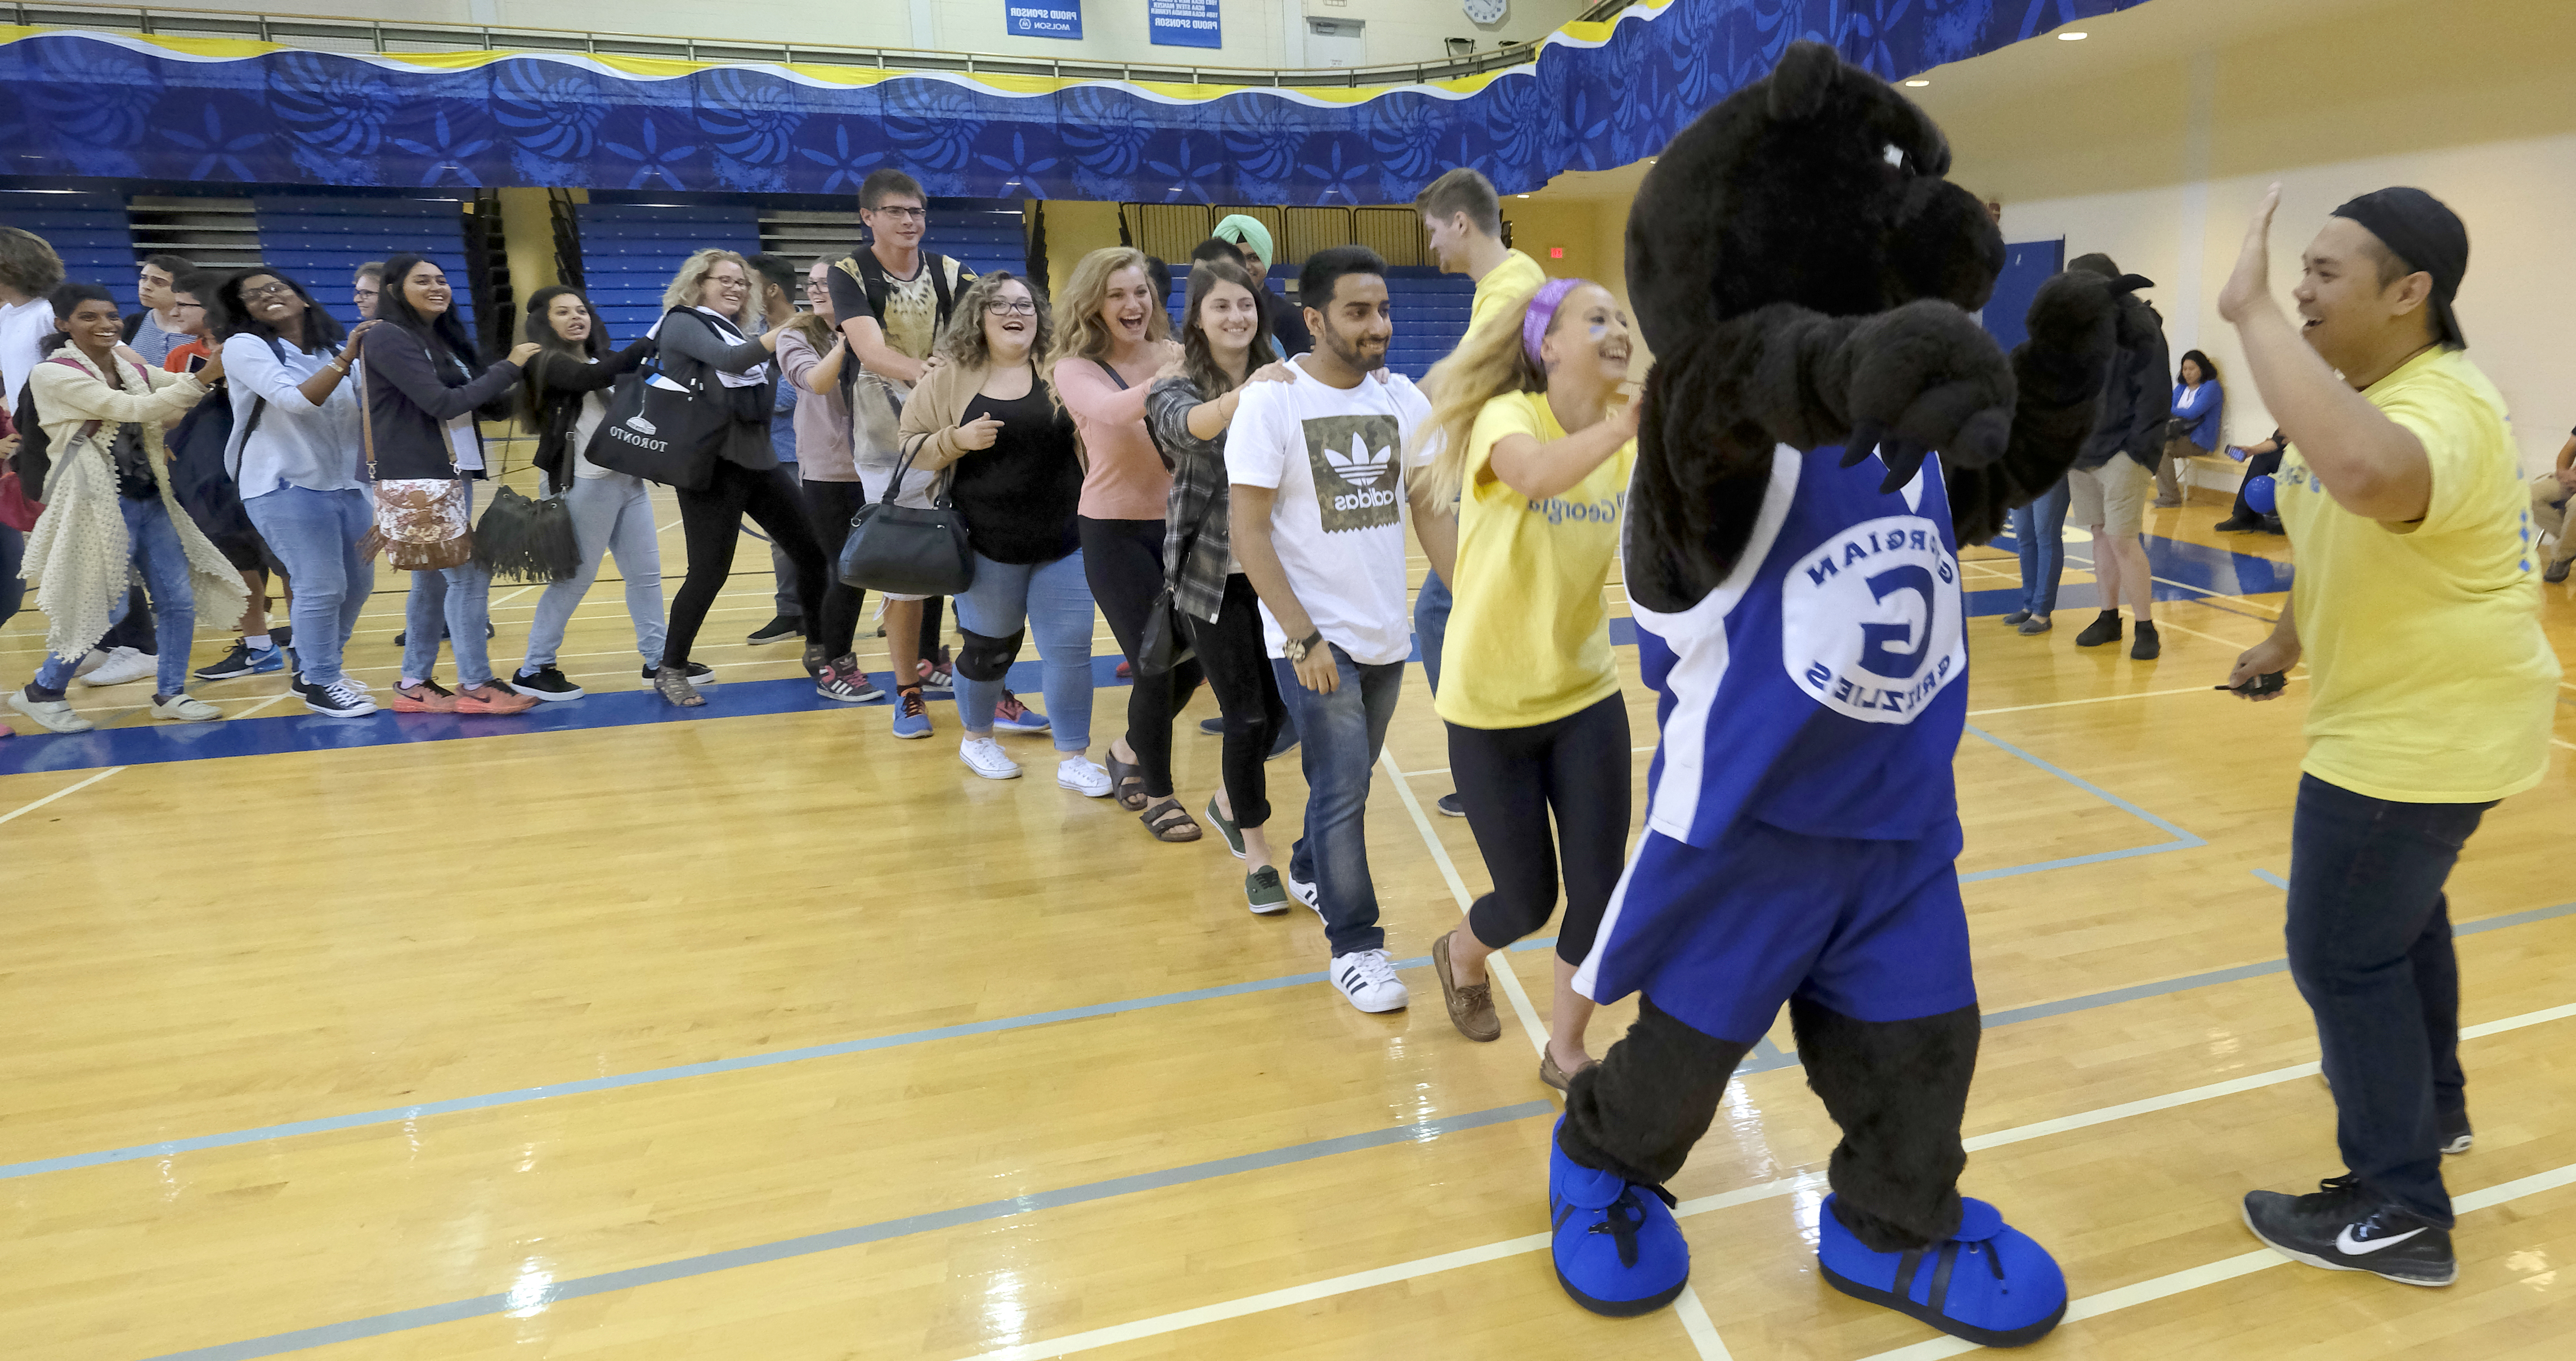 Growler the Grizzly mascot leads a conga line of students